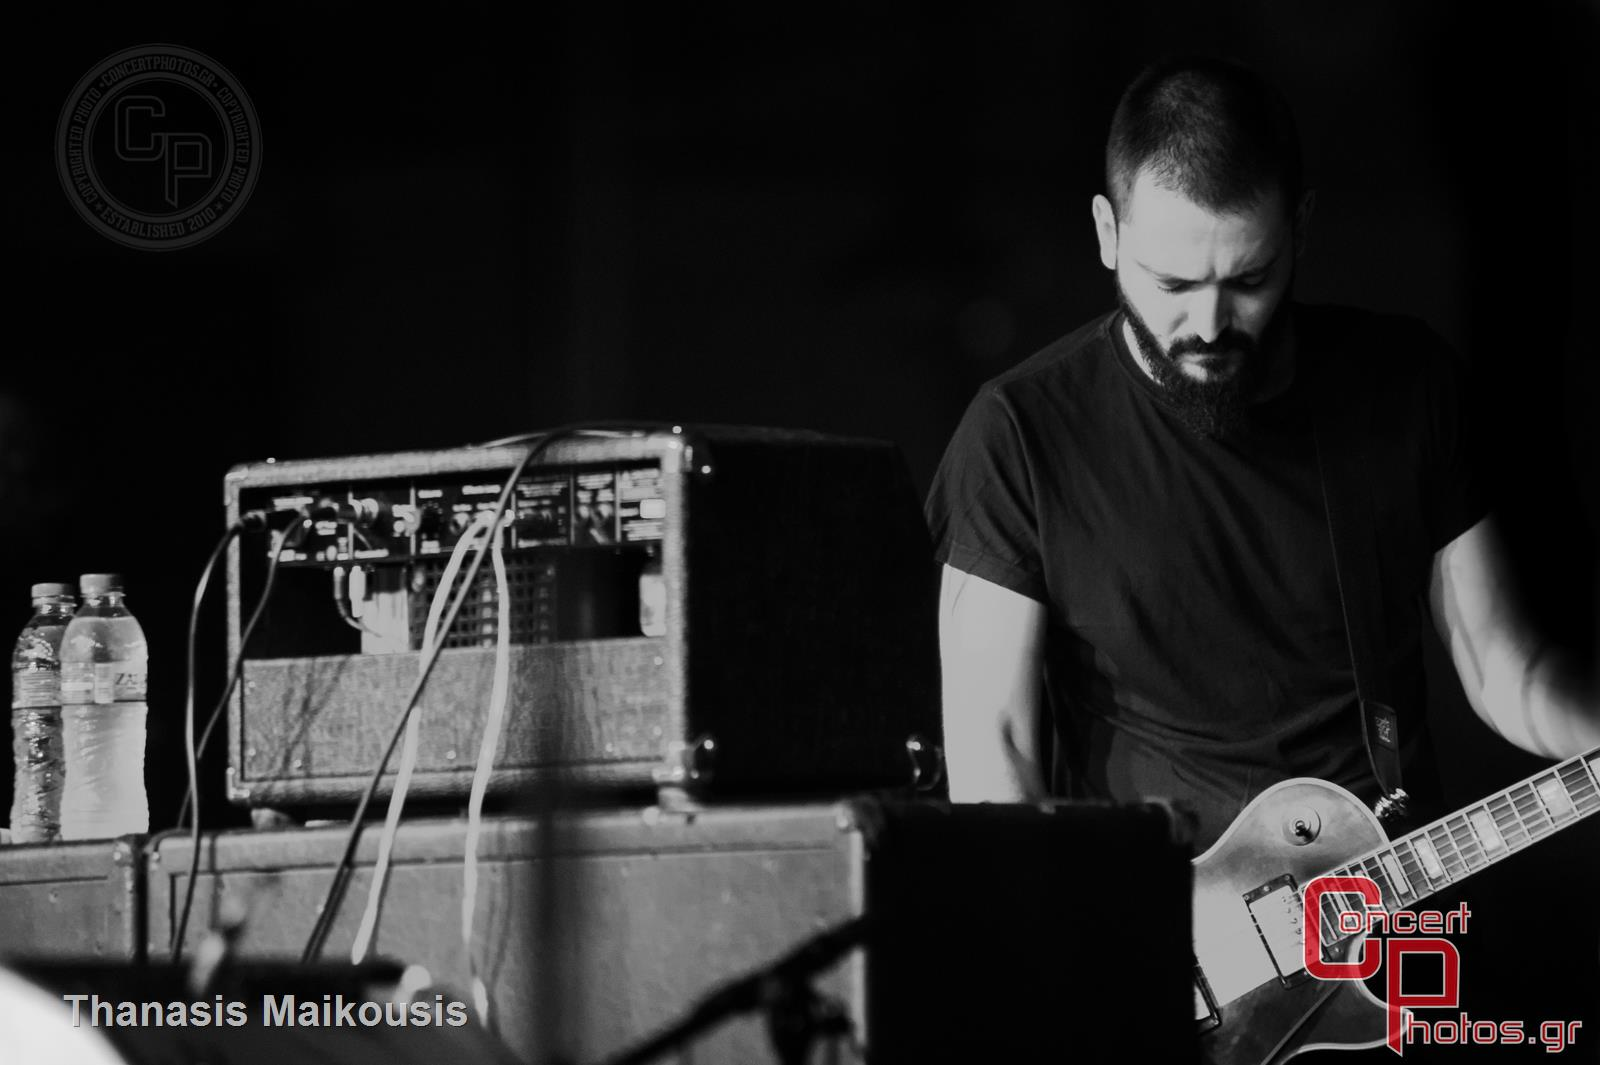 VIC-VIC-Technopolis photographer: Thanasis Maikousis - concertphotos_20150925_21_37_44